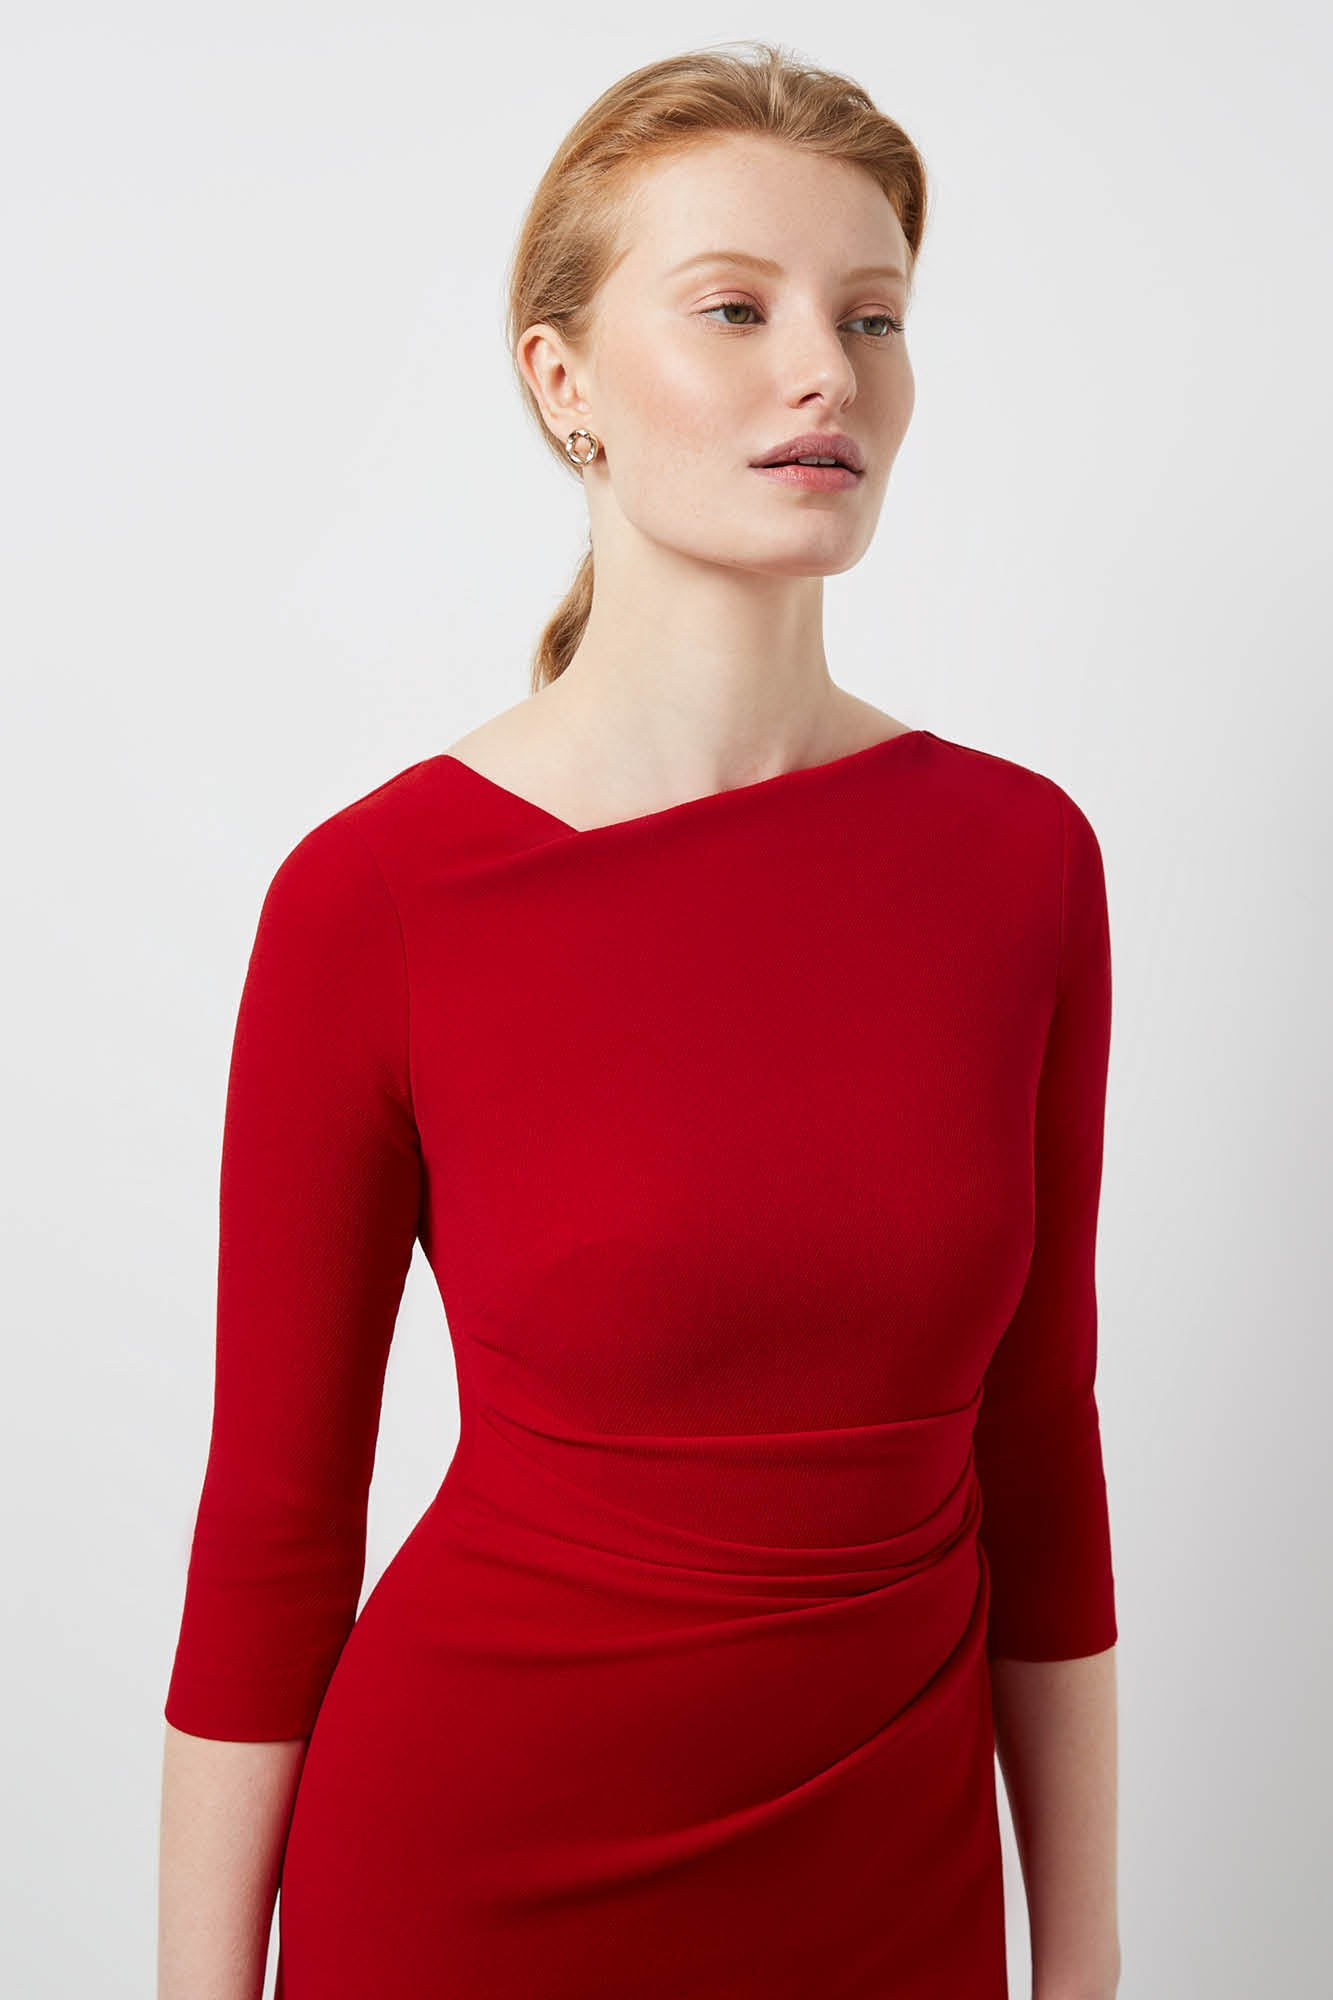 Tiverton Red Dress